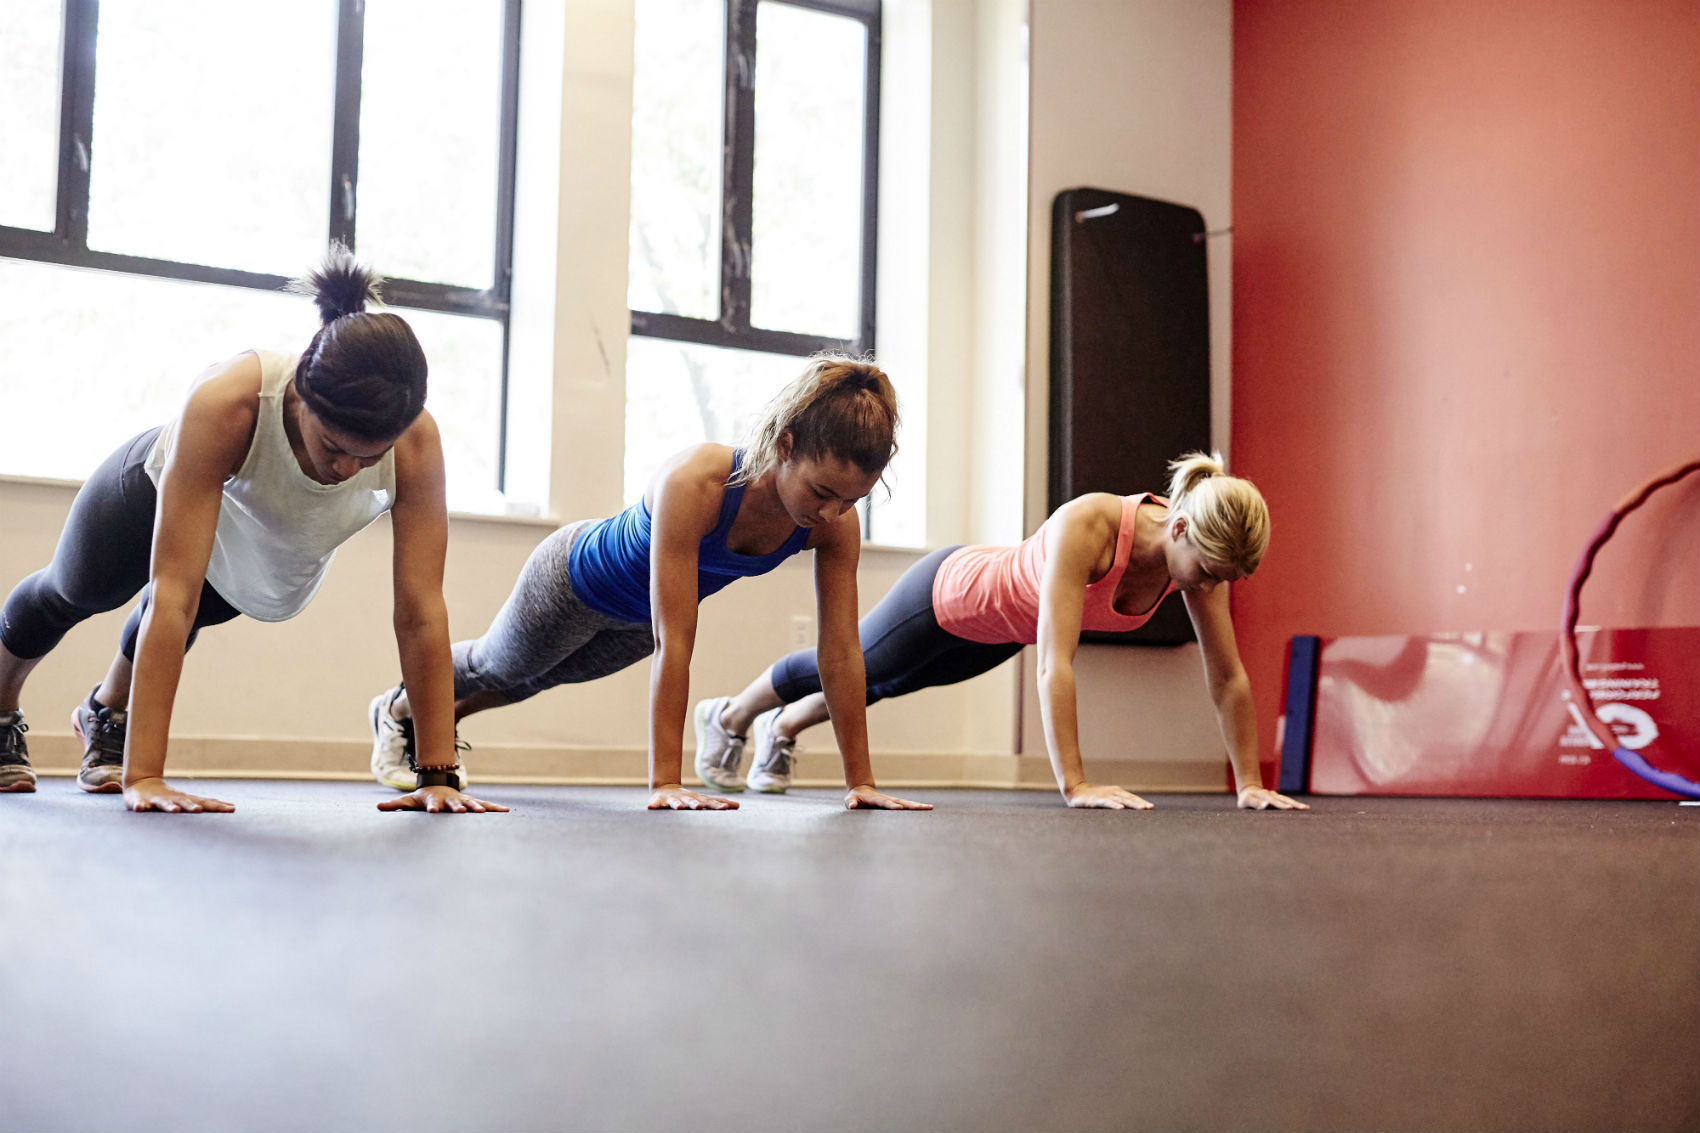 How Many Push-Ups Can You Do in 1 Minute?